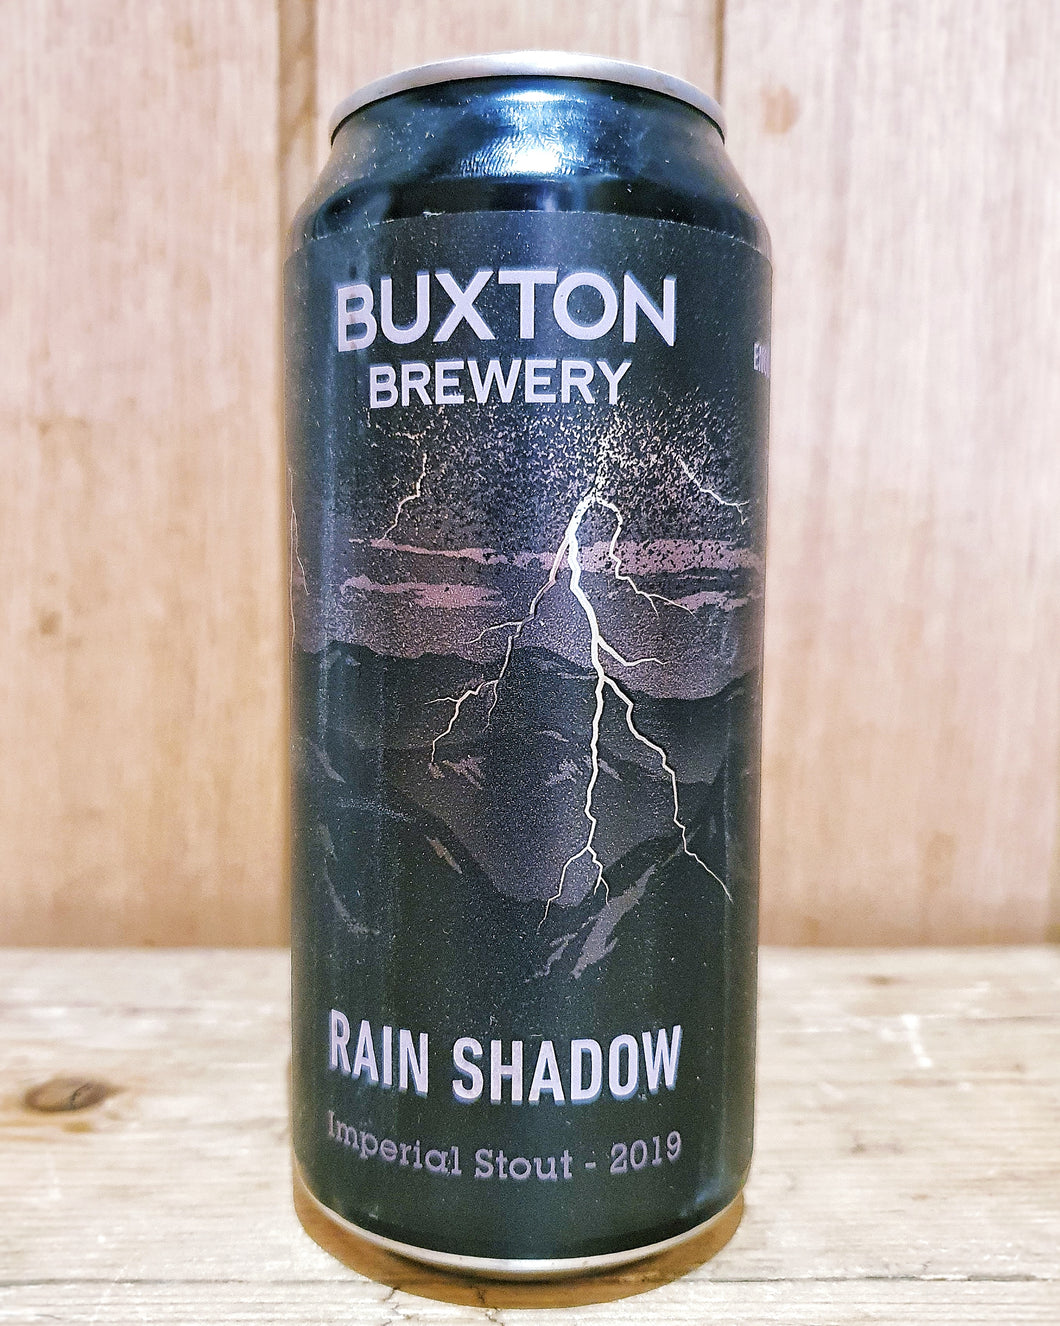 Buxton Rain Shadow Imperial Stout 2018